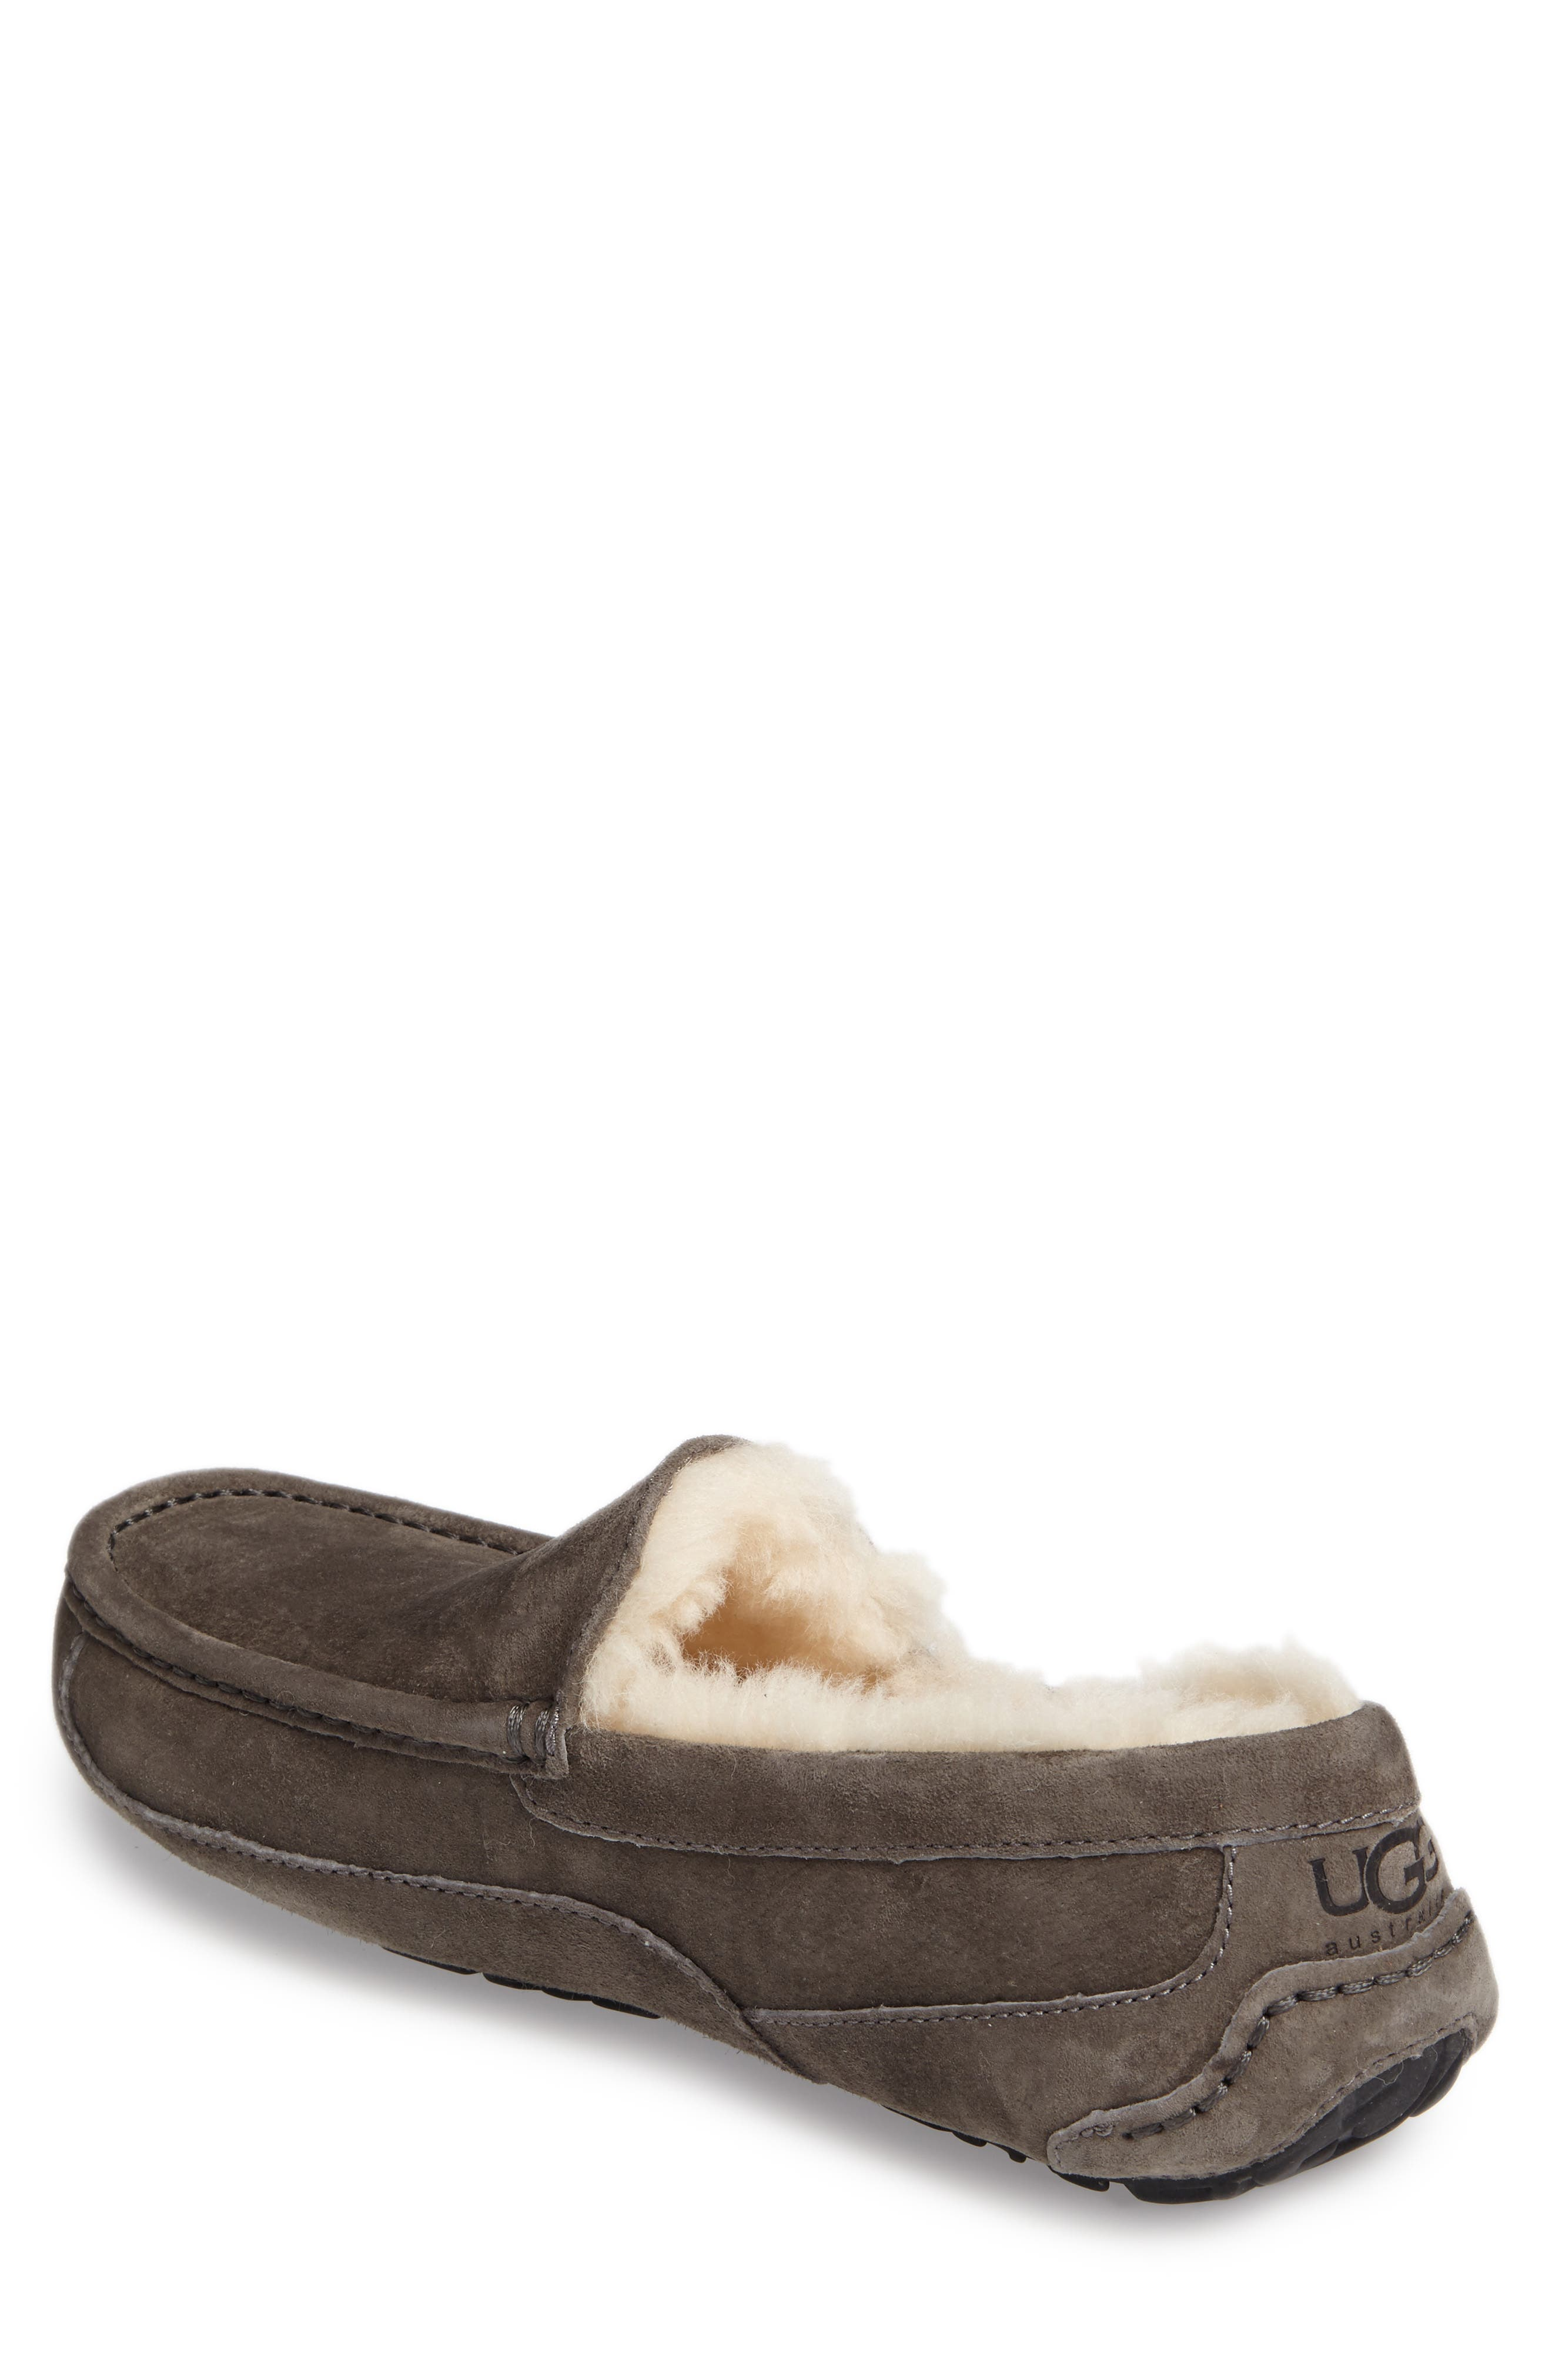 Ascot Suede Slipper,                             Alternate thumbnail 2, color,                             CHARCOAL